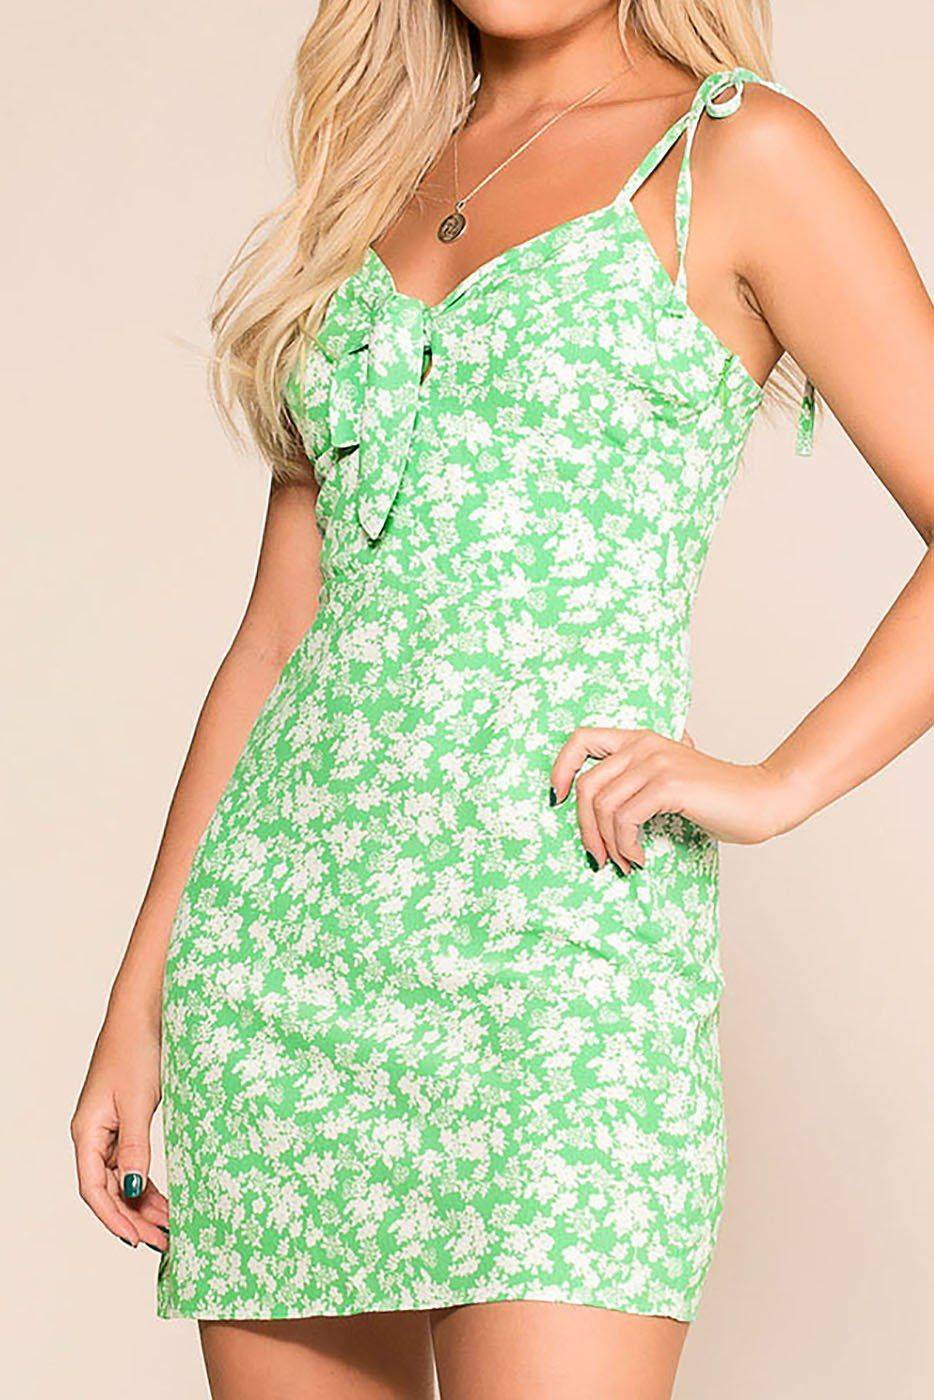 Candy In The Garden Green Floral Sun Dress  - G1195 Jade Small